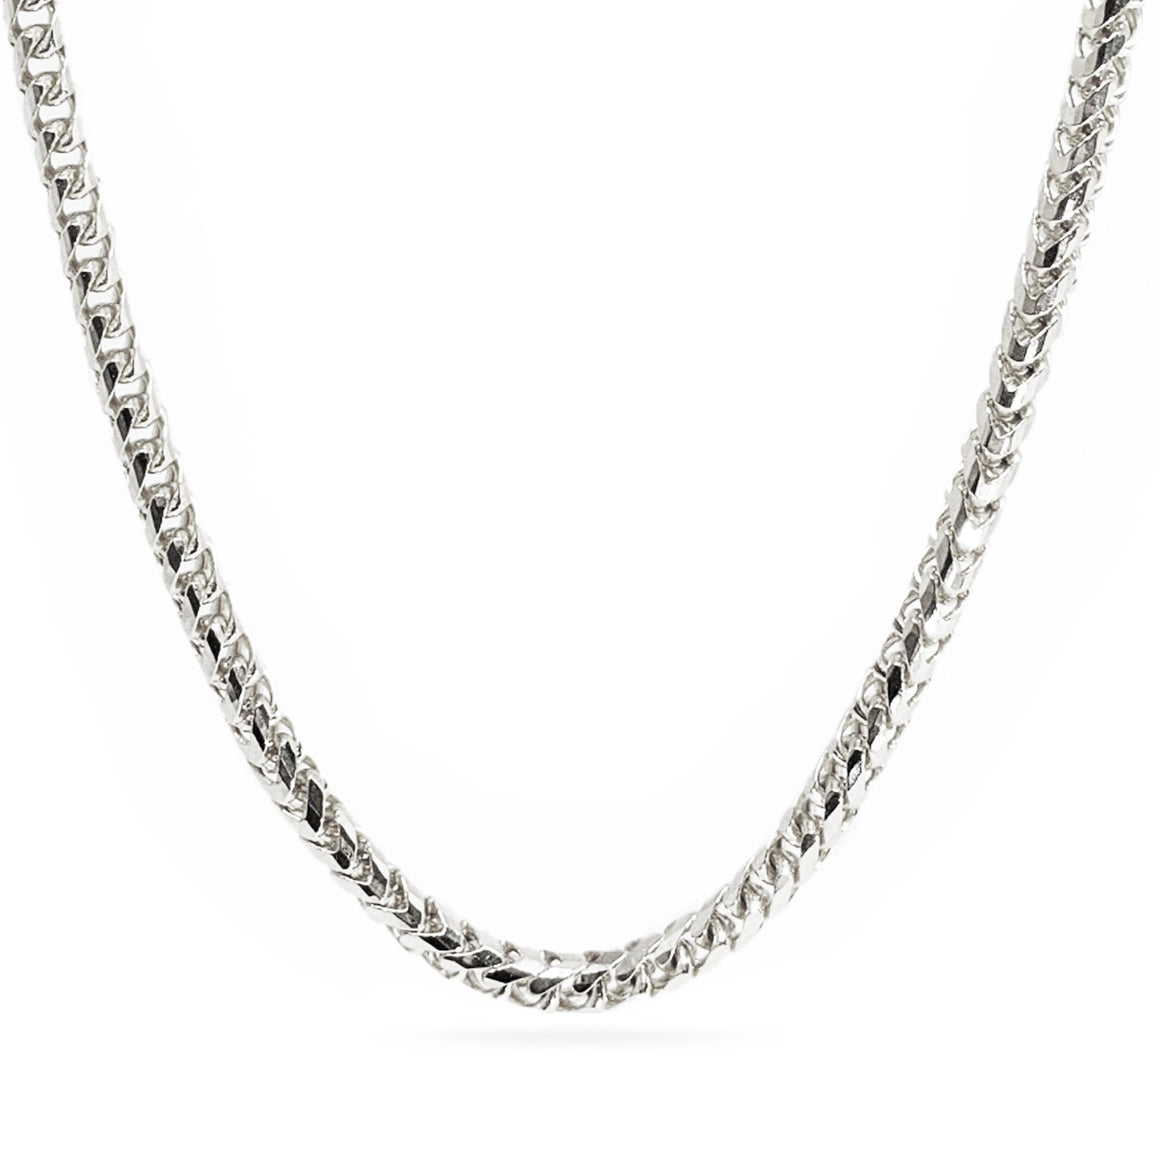 3mm Diamond Cut Franco Chain - 18k White Gold